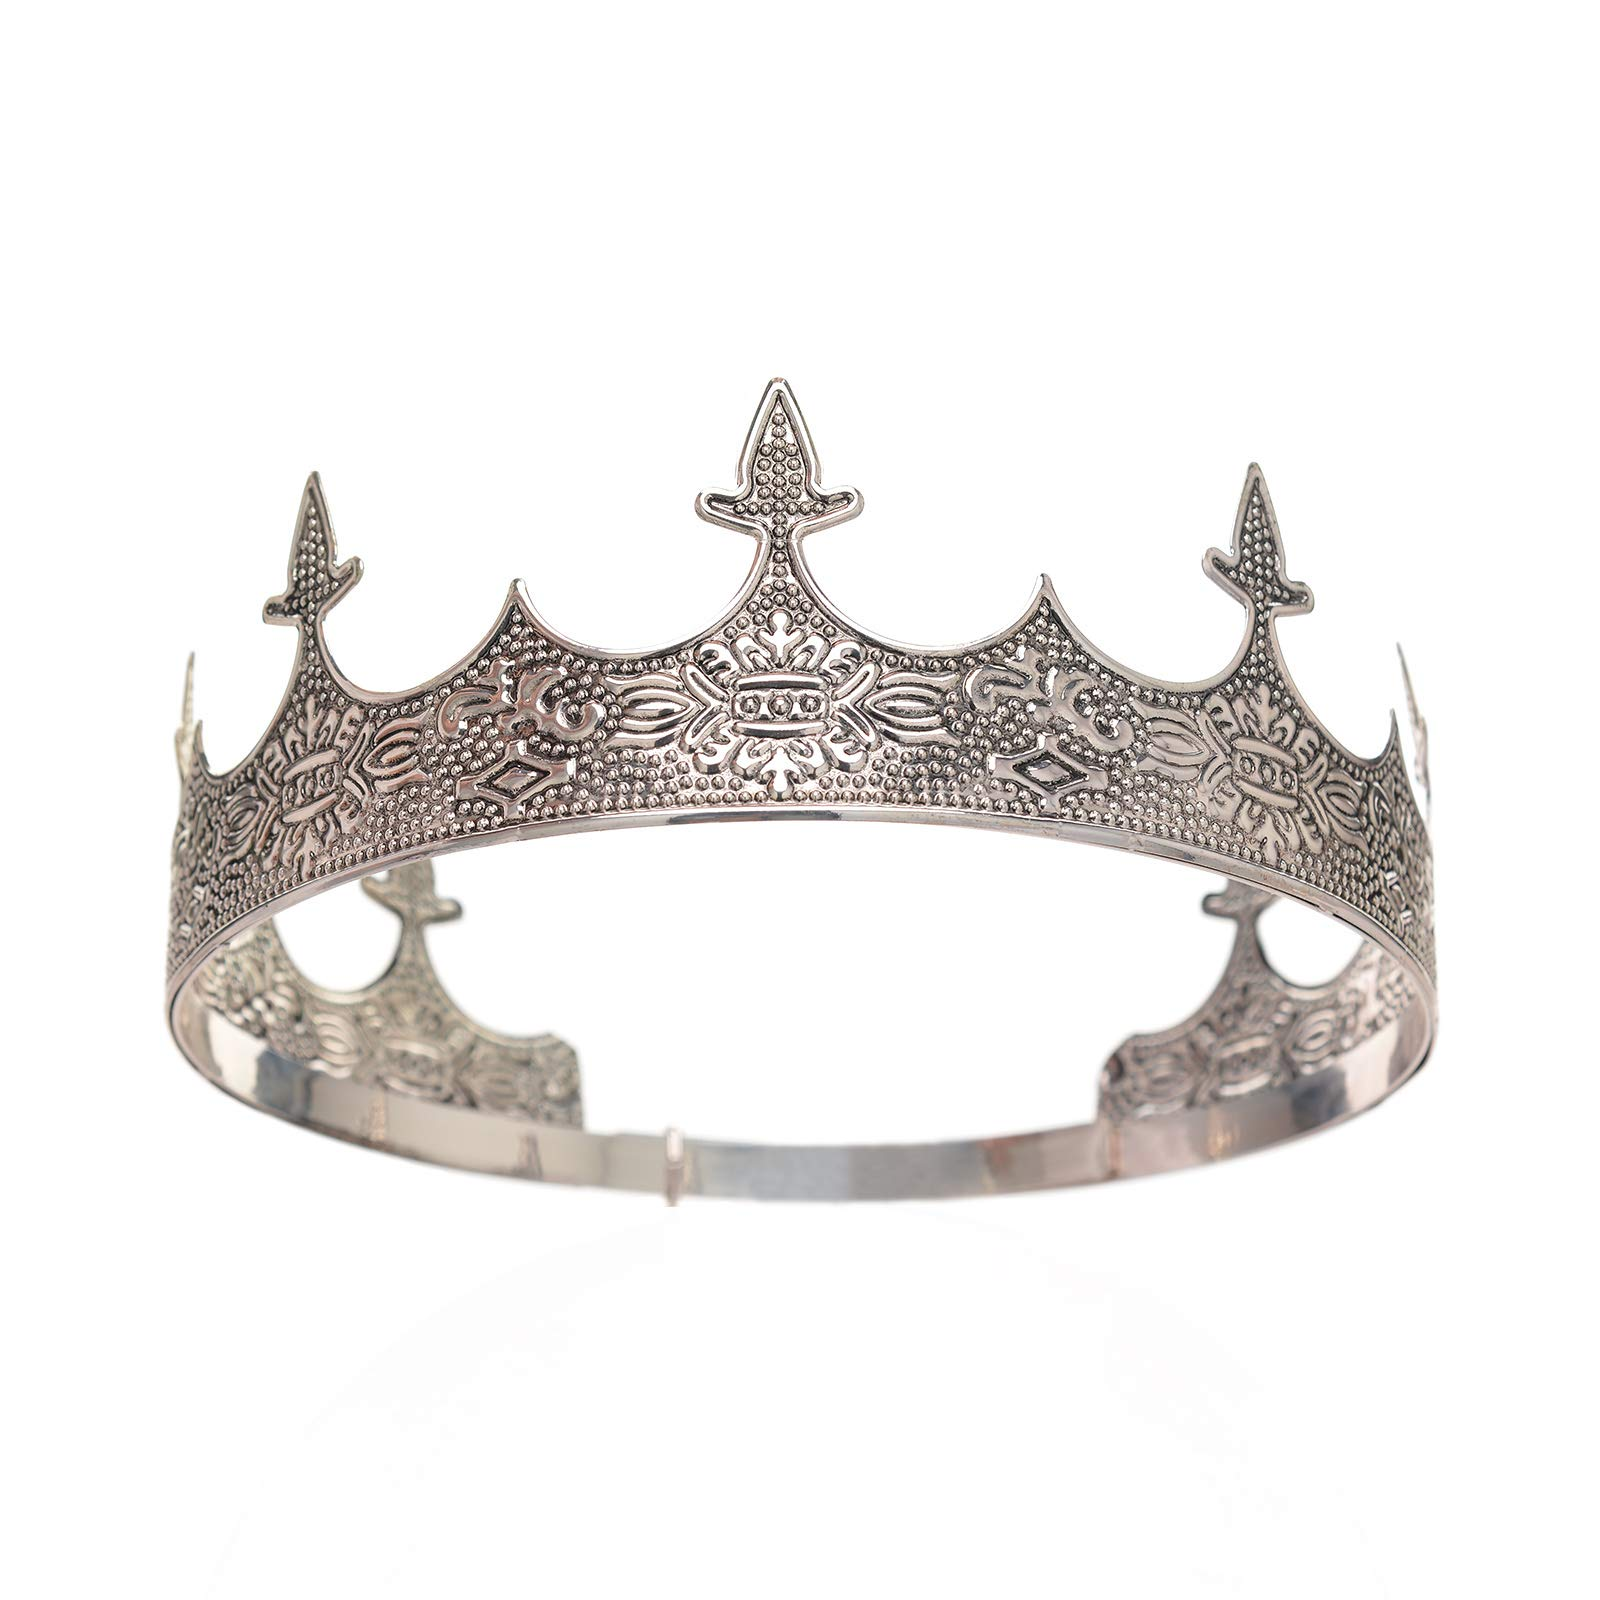 SWEETV Antique Silver King Crown - Men's Crown for Prom King Party Decorations, Royal Medieval Crown and Scepter Costume Accessories for Adults and Boys